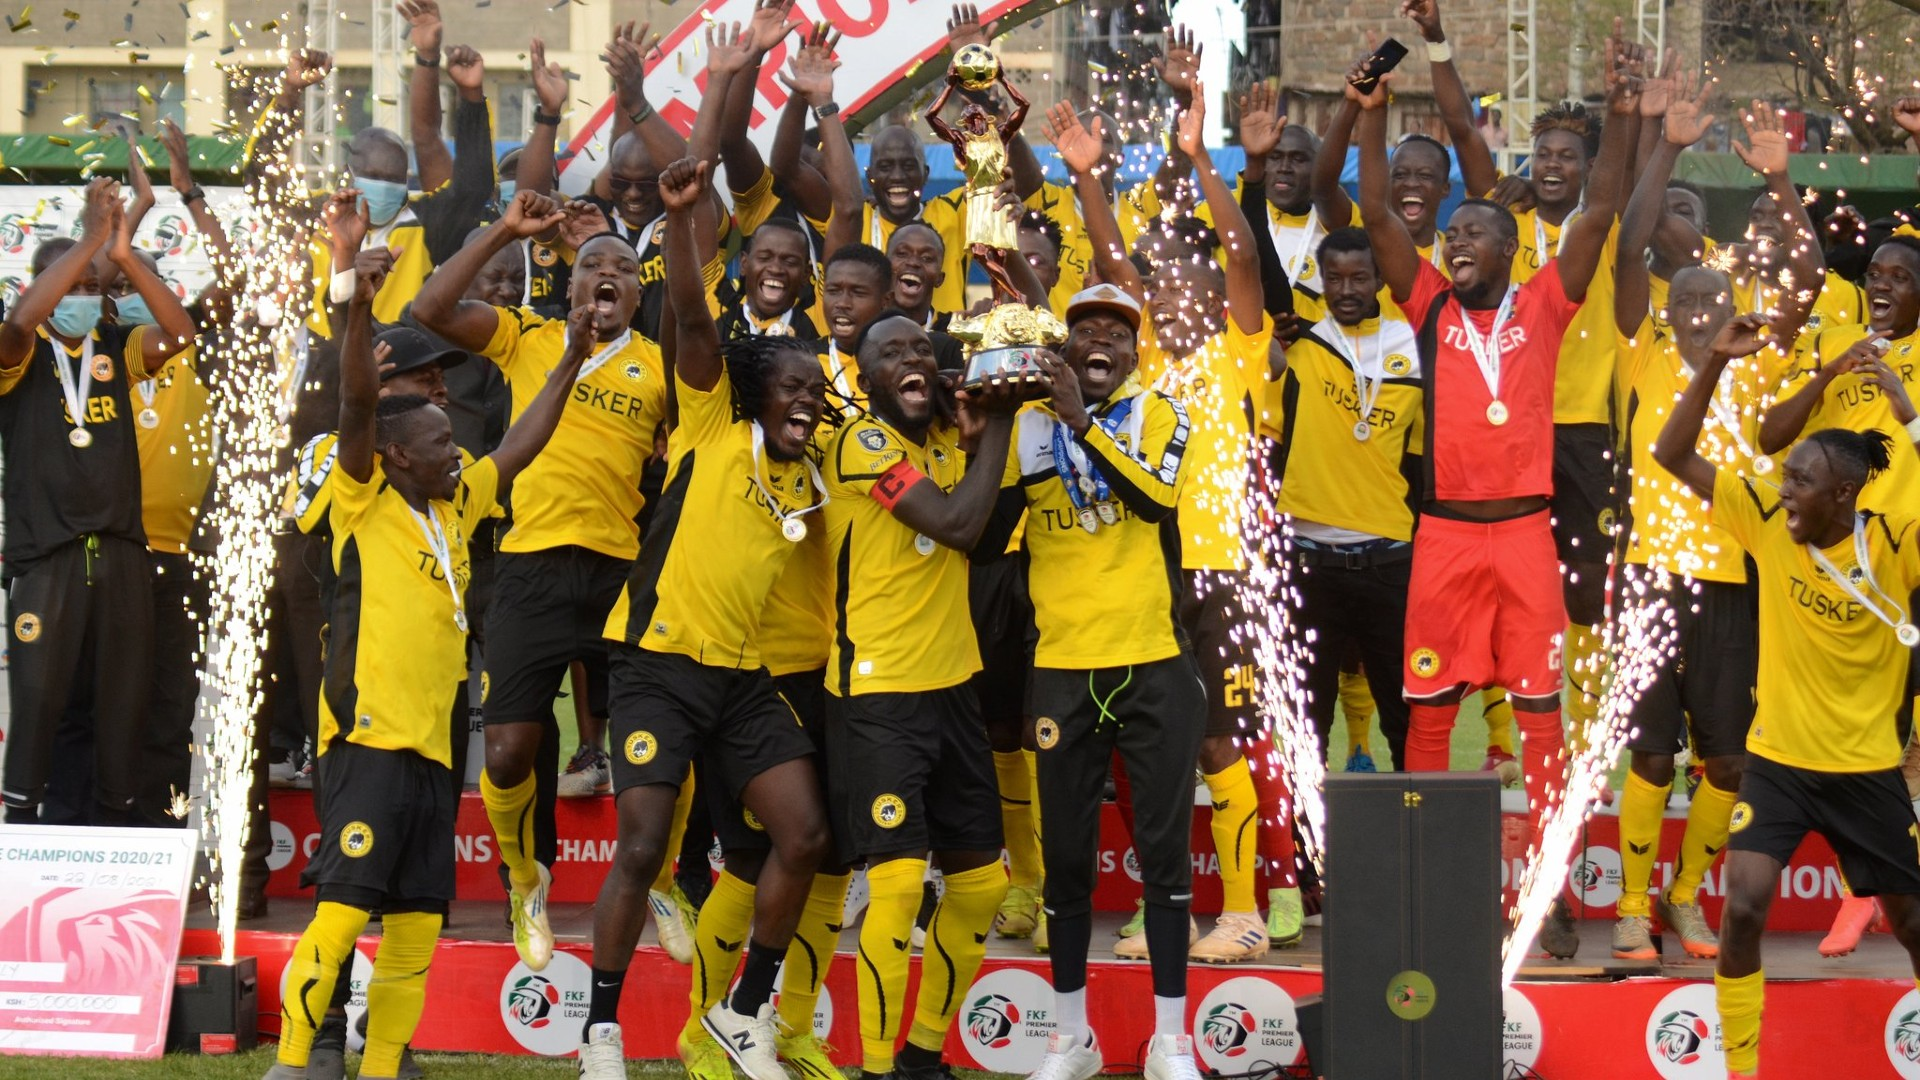 FKF Premier League: Breaking down Tusker's opening five matches this season